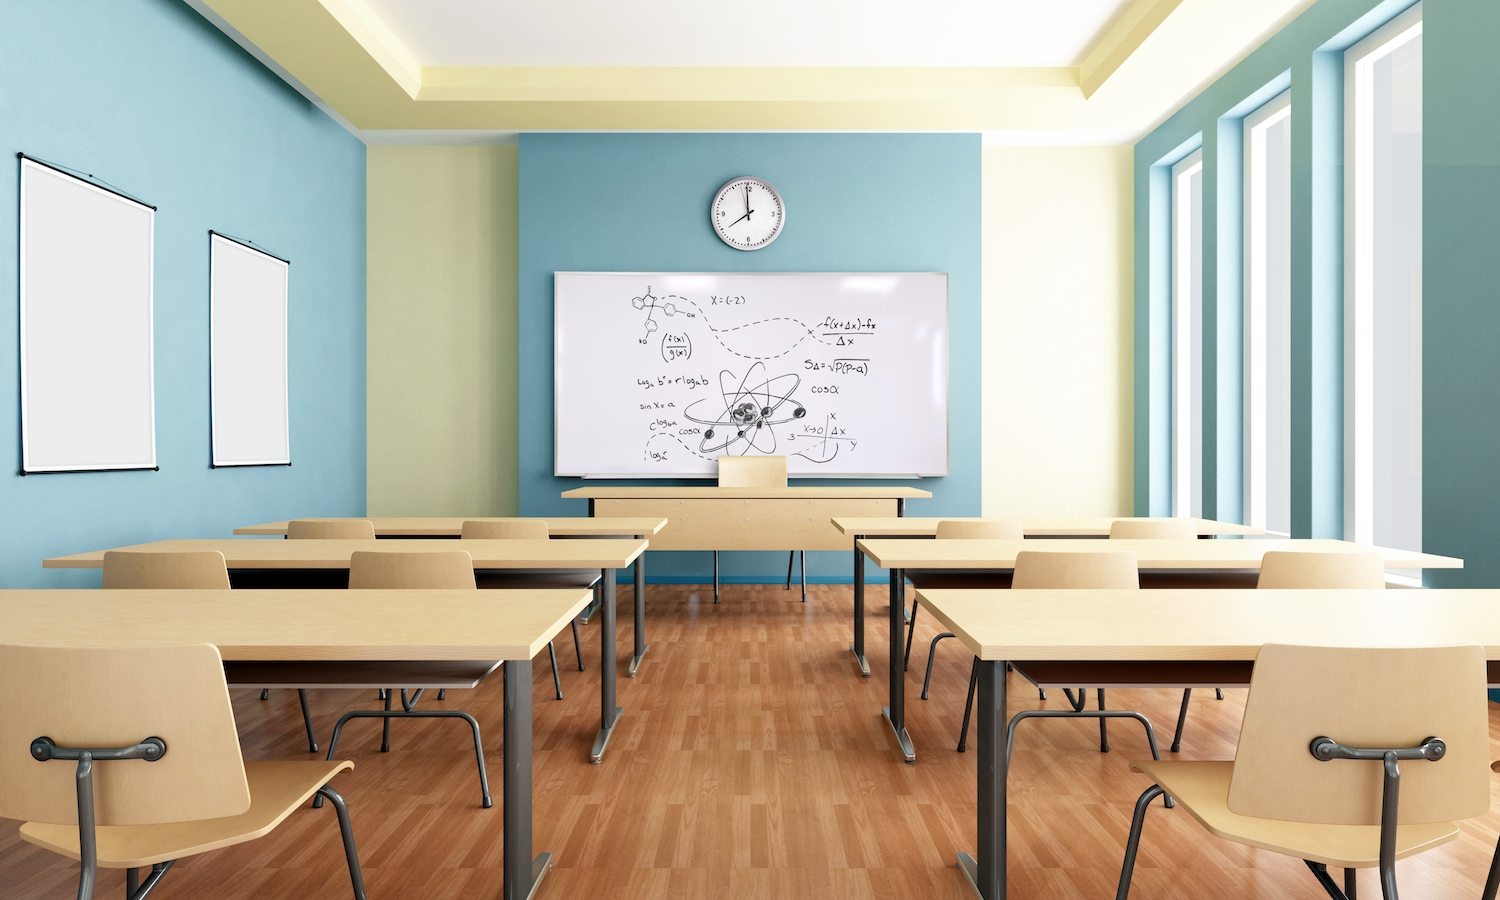 Whiteboards In The Classroom